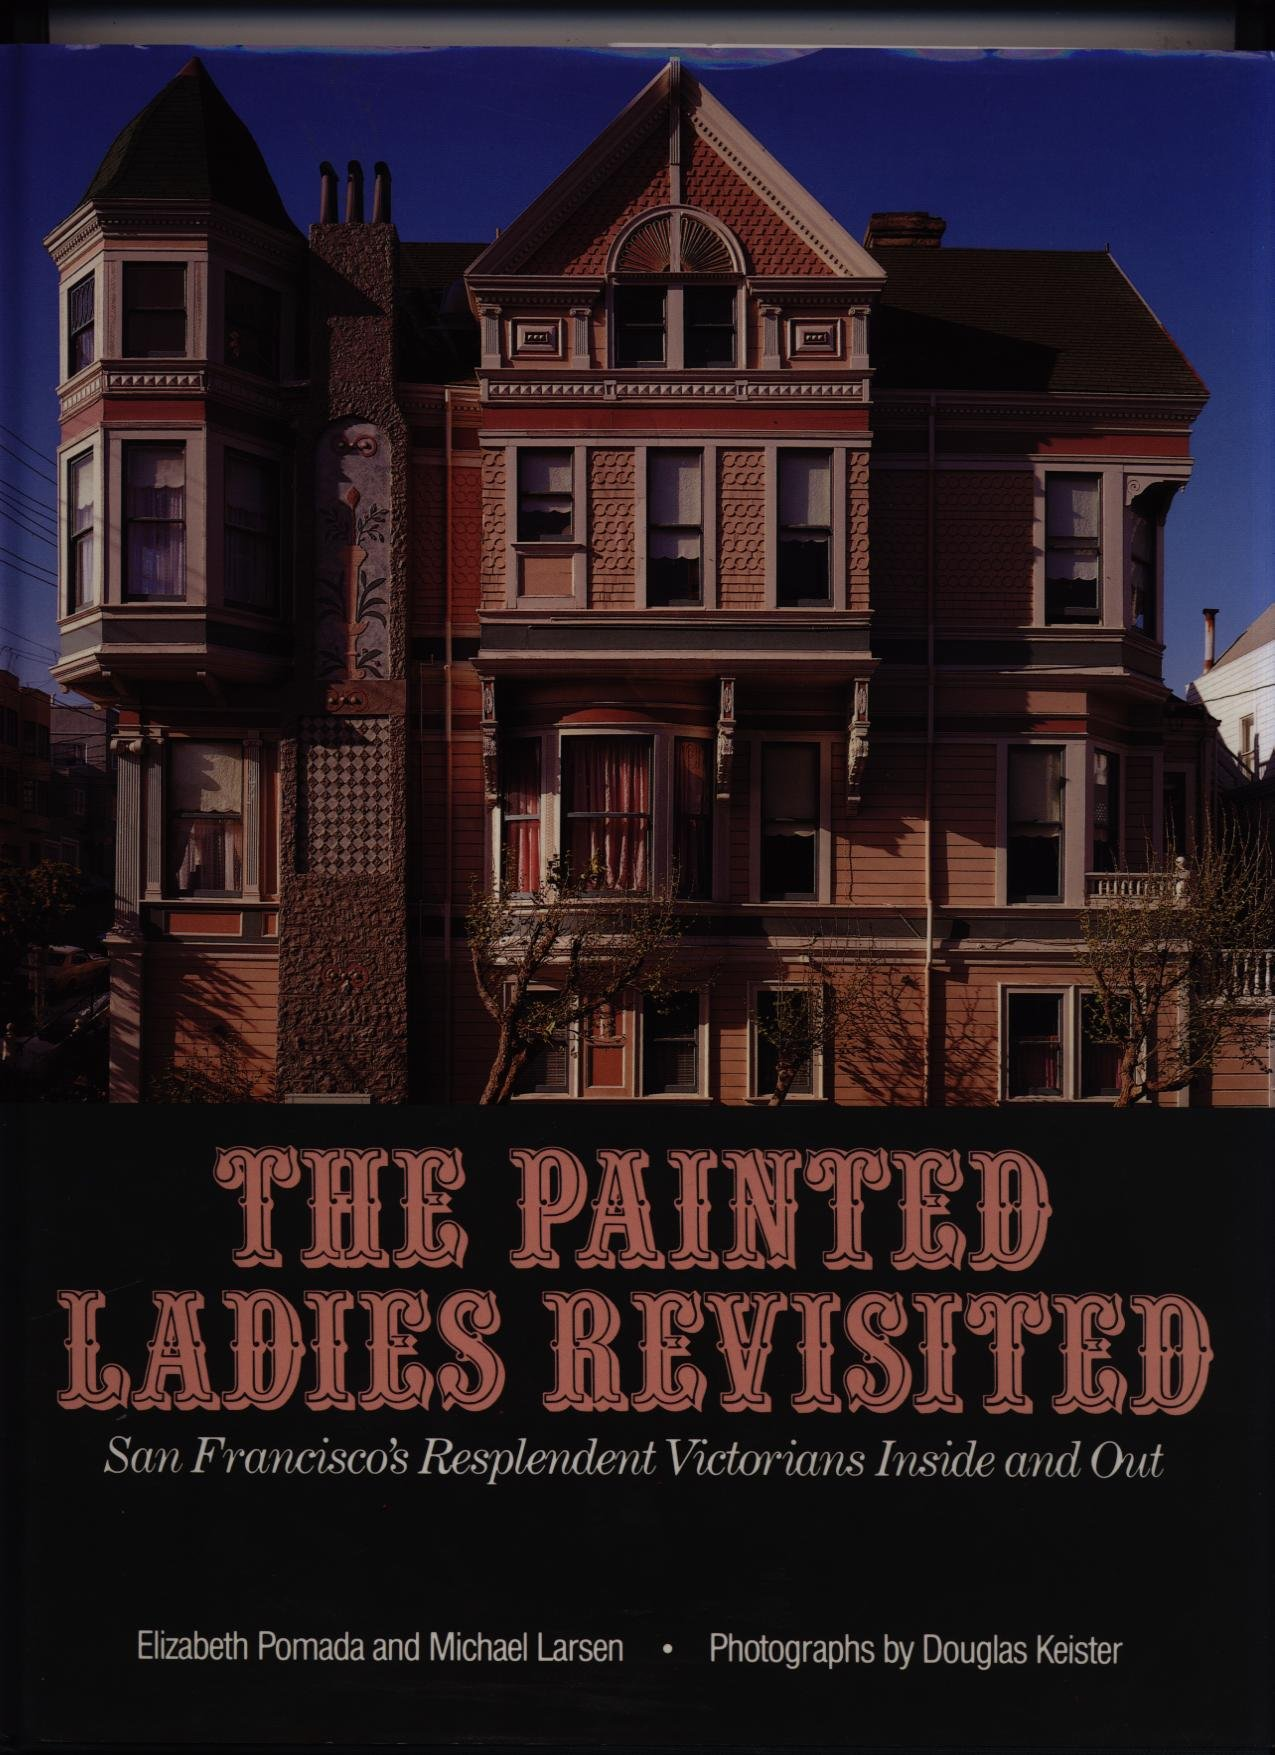 Painted Ladies Revisited: San Francisco's Resplendent Victorians Inside and Out